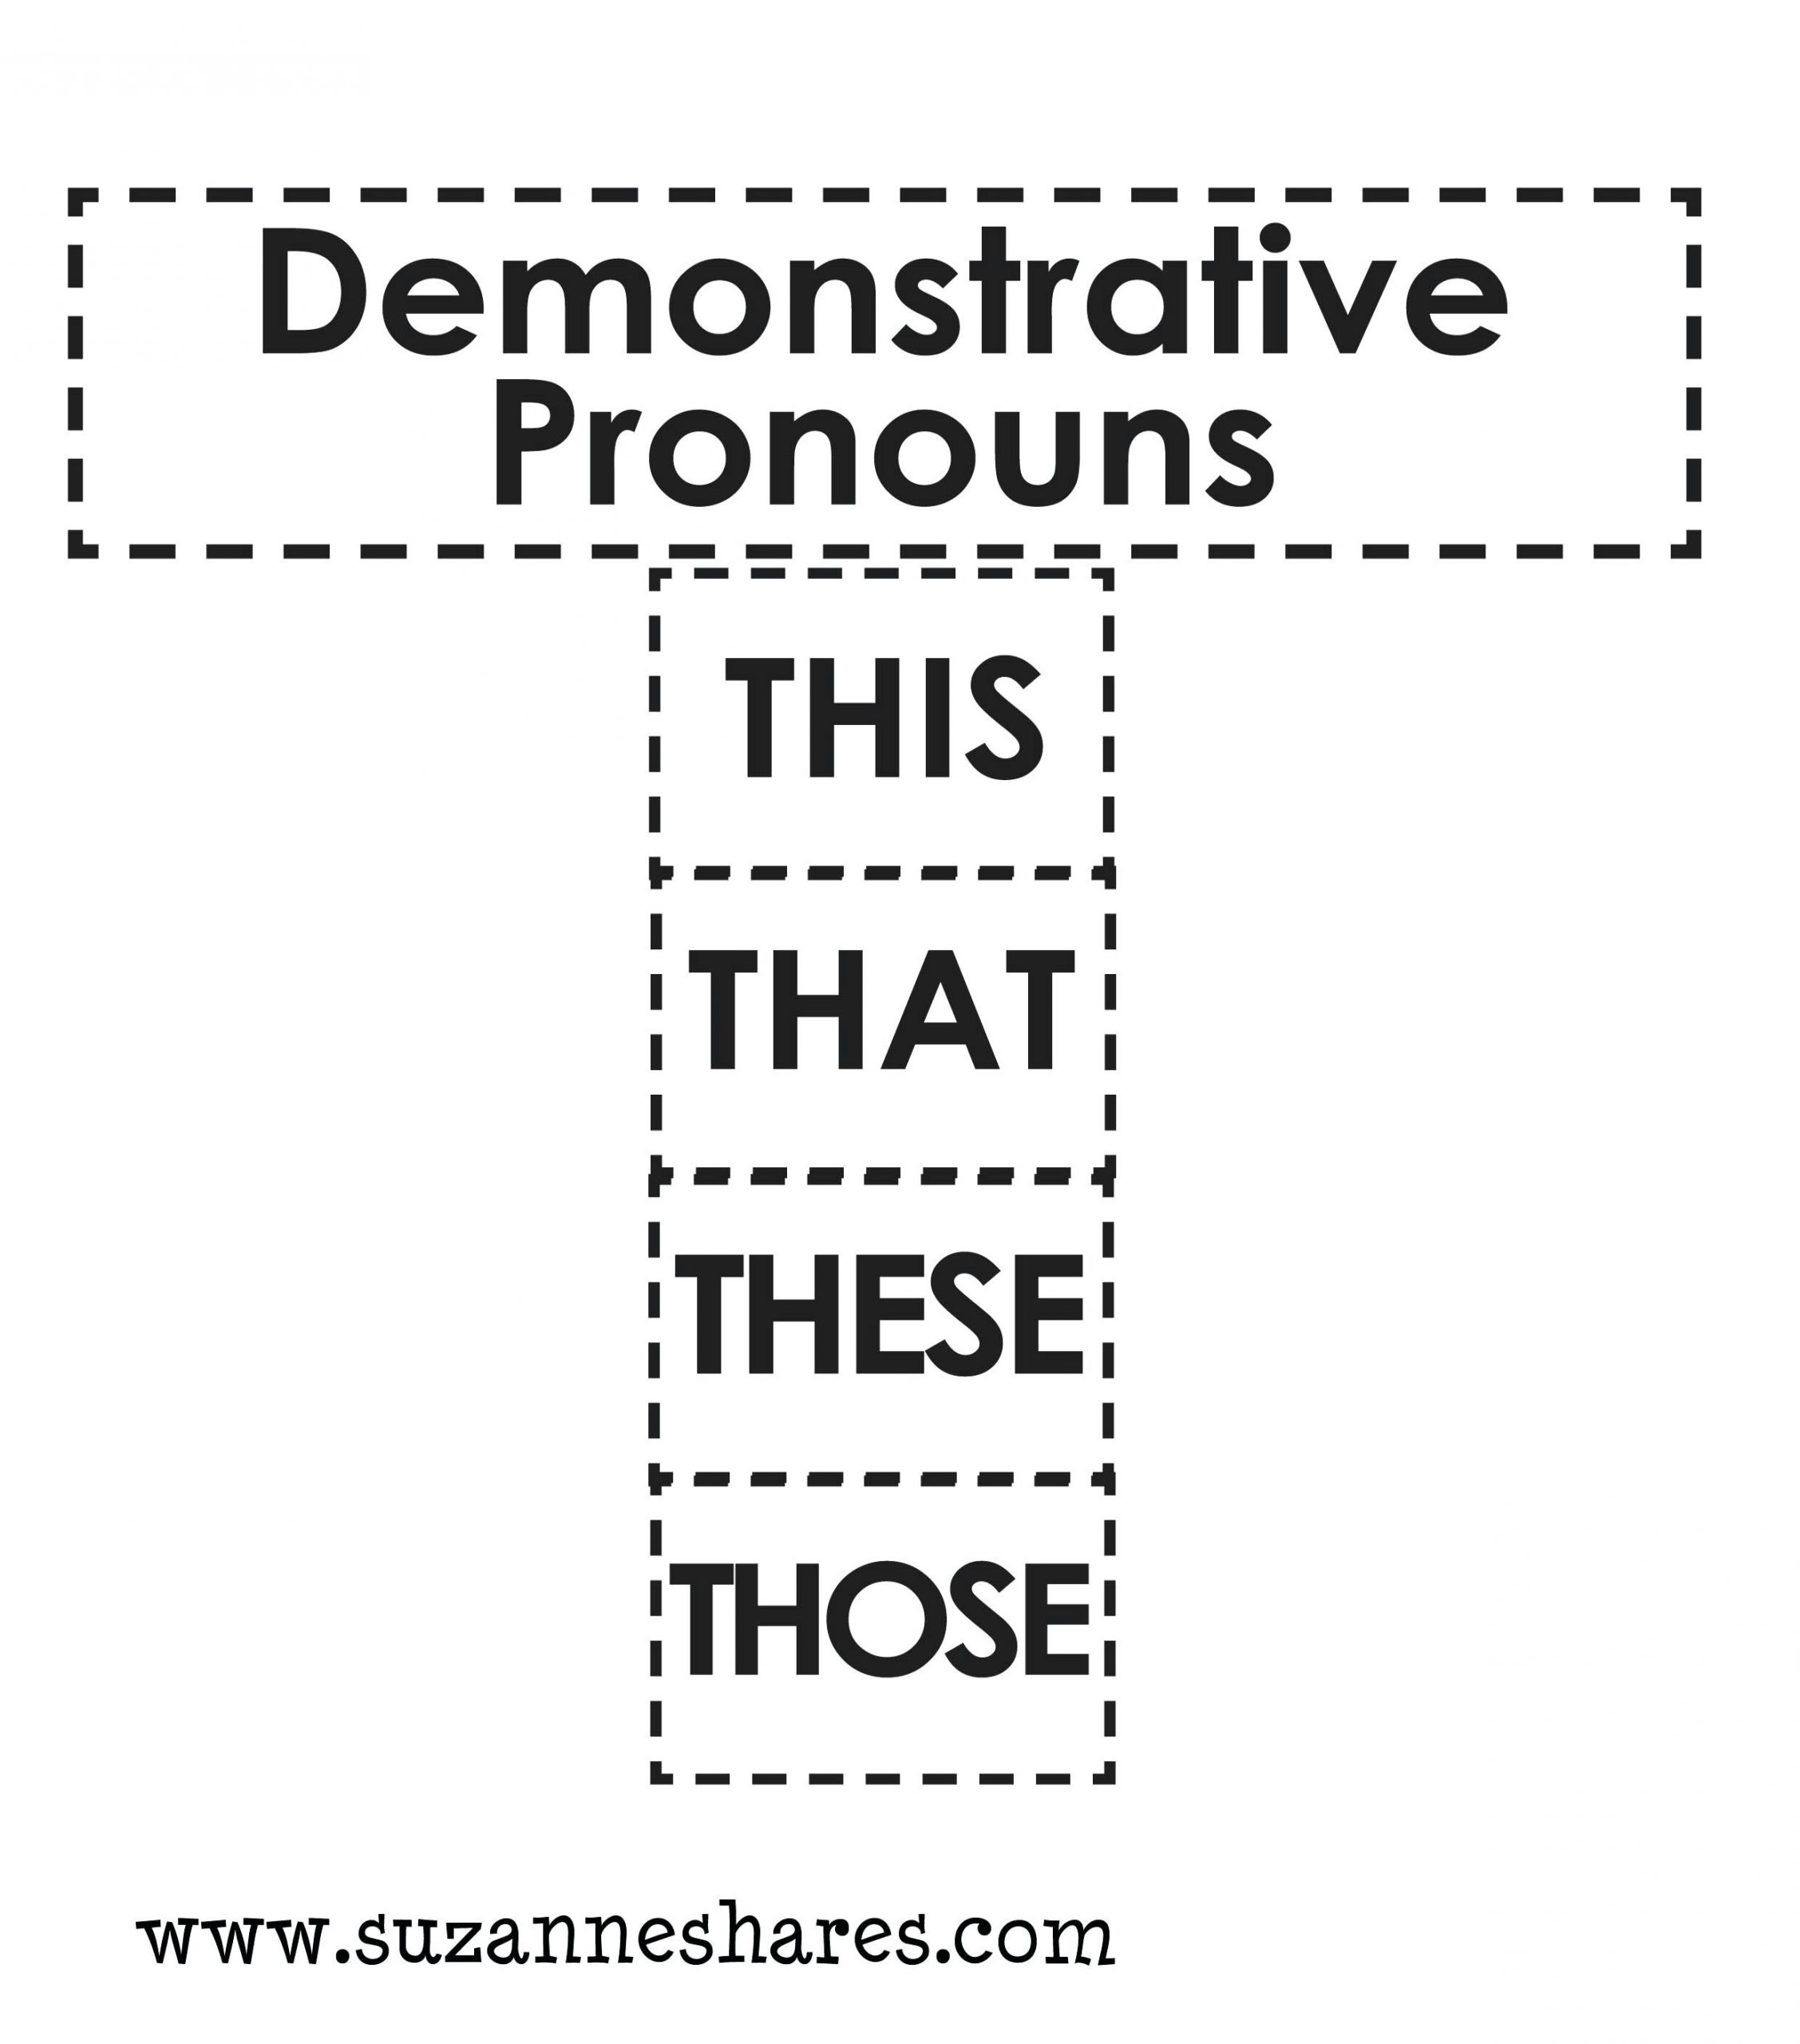 Relative Pronouns Worksheets 4th Grade Interrogative Pronouns Worksheets for Kids – Momami